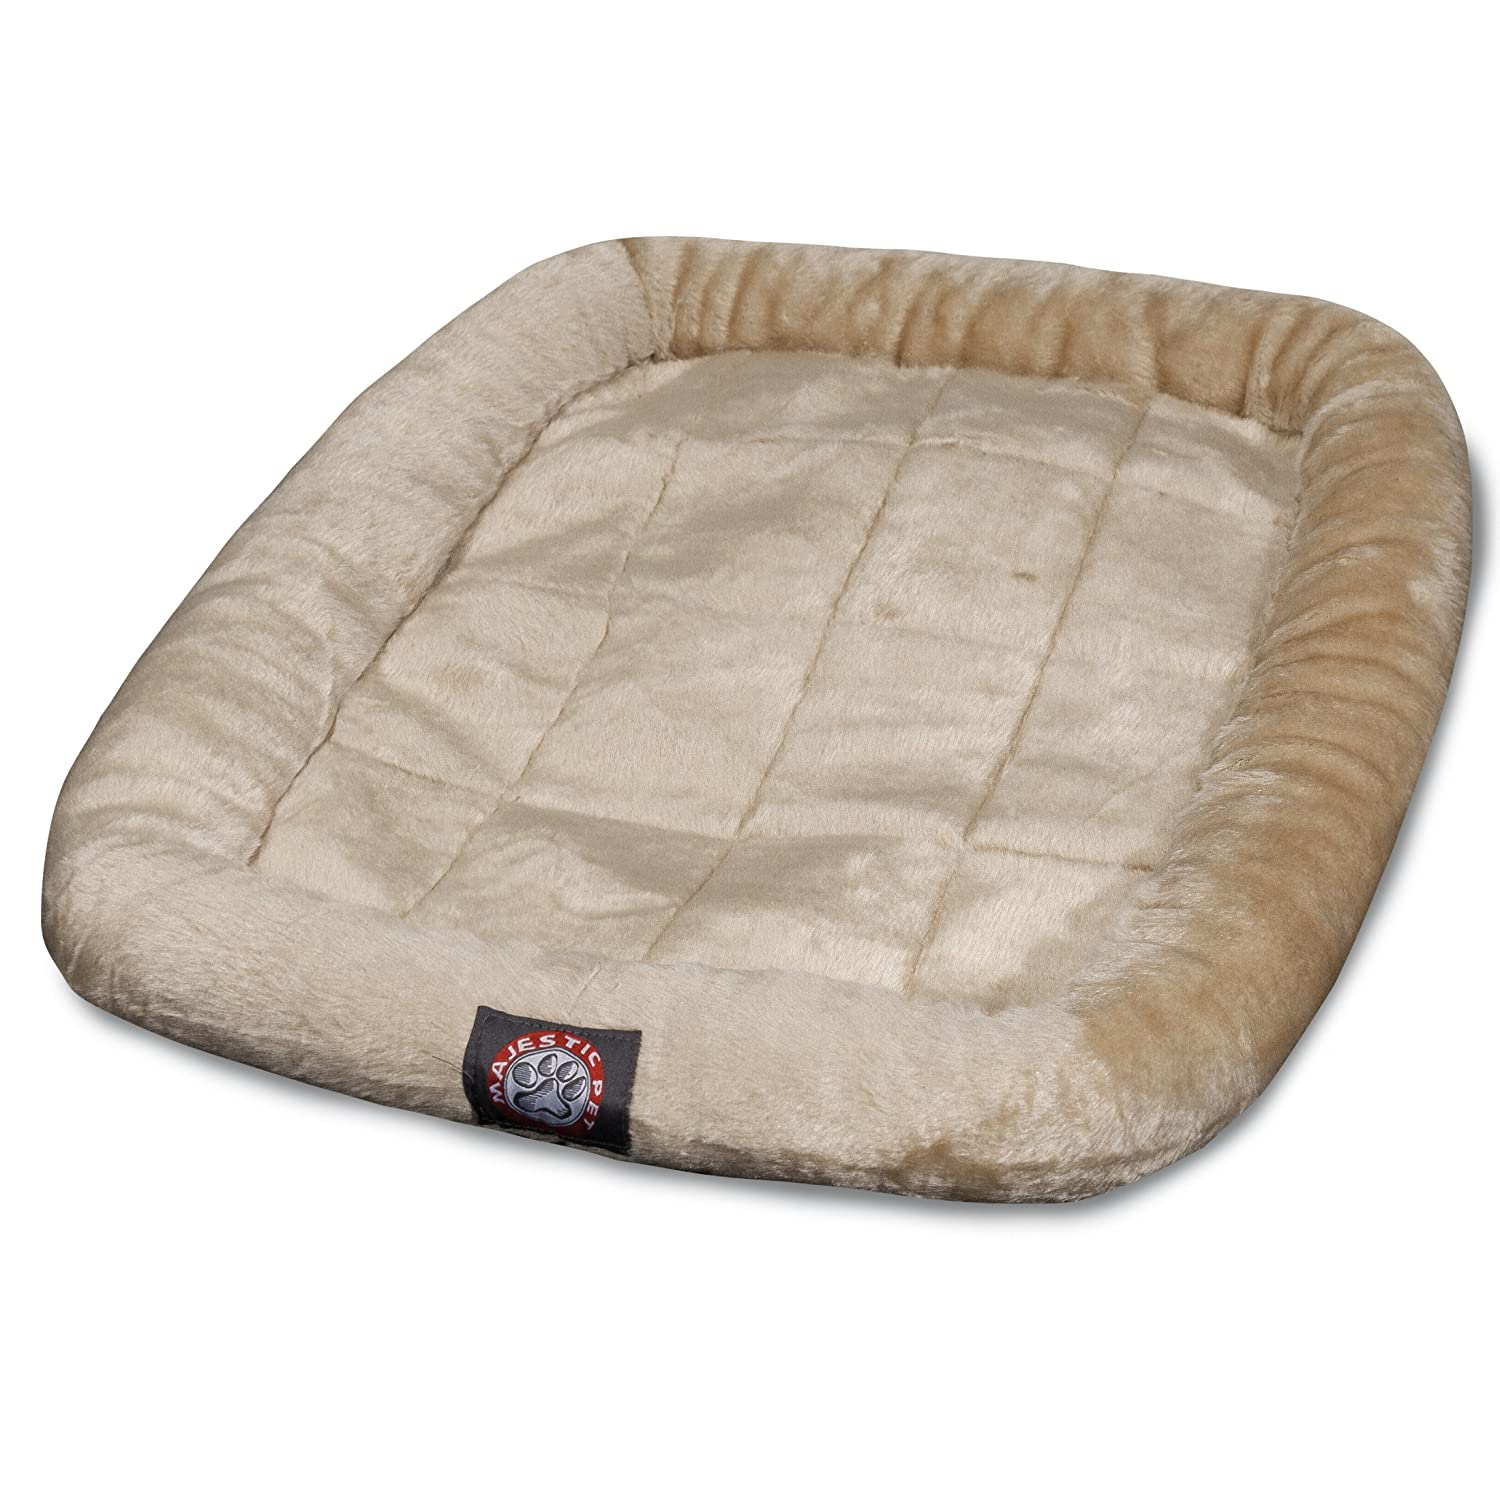 36 inch Honey Crate Pet Bed Mat By Majestic Pet Products